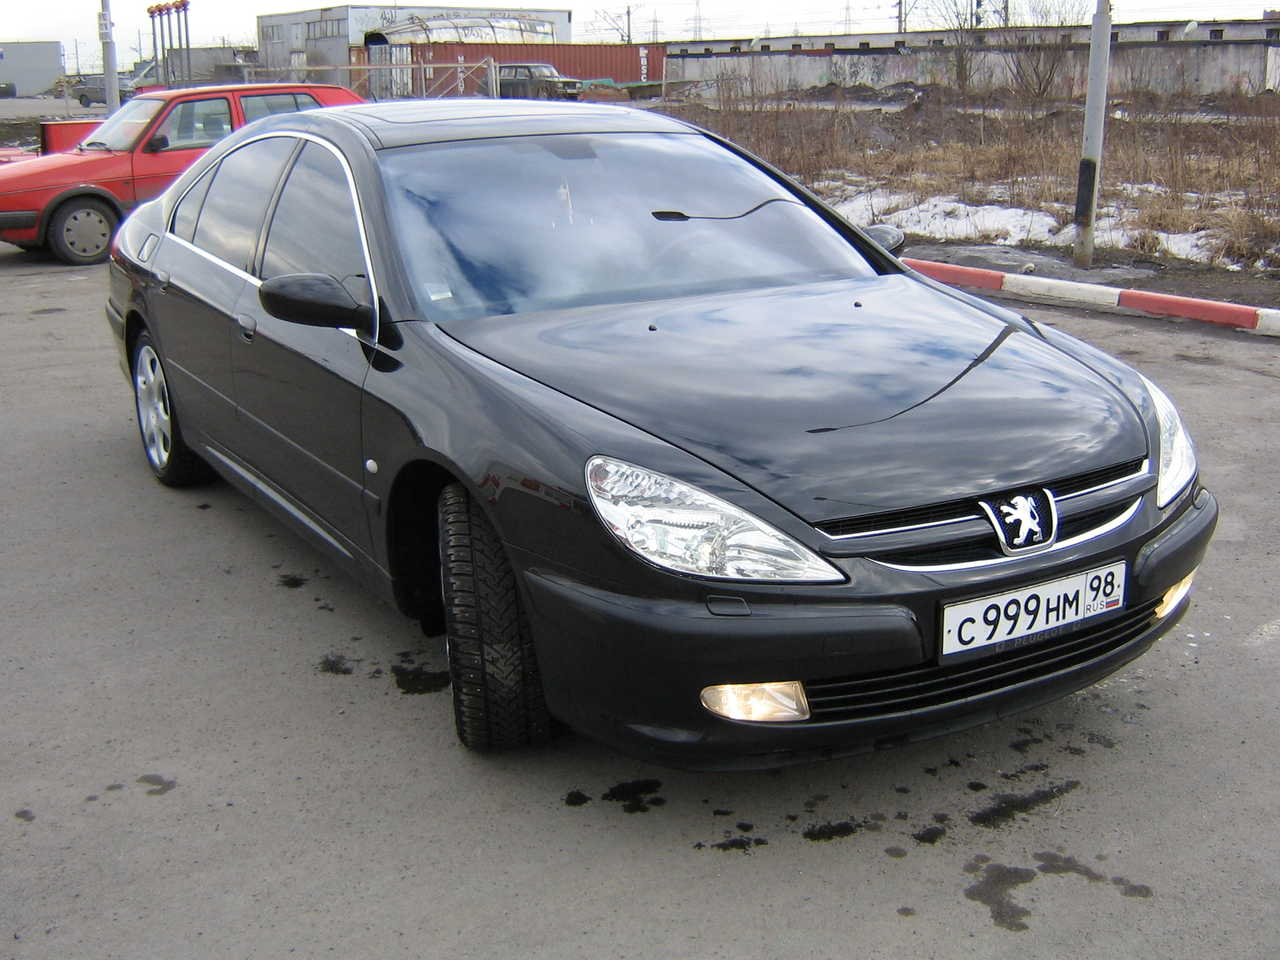 2004 peugeot 607 pics 3 0 gasoline ff automatic for sale. Black Bedroom Furniture Sets. Home Design Ideas